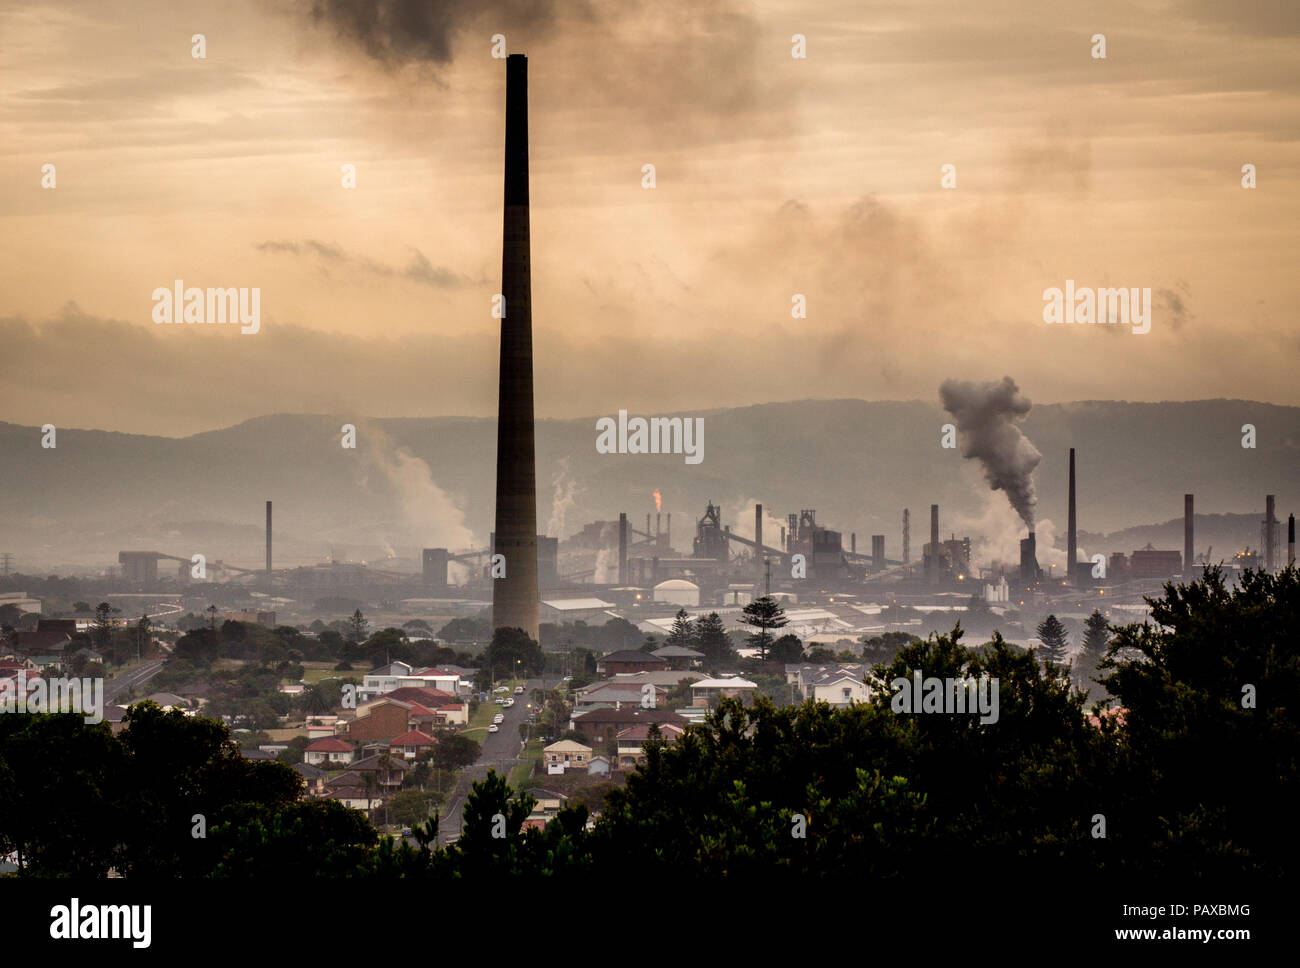 Climate change concept industrial landscape with chimney stacks showing emissions of steam and smoke from industrial works, Port Kembla, NSW Australia - Stock Image